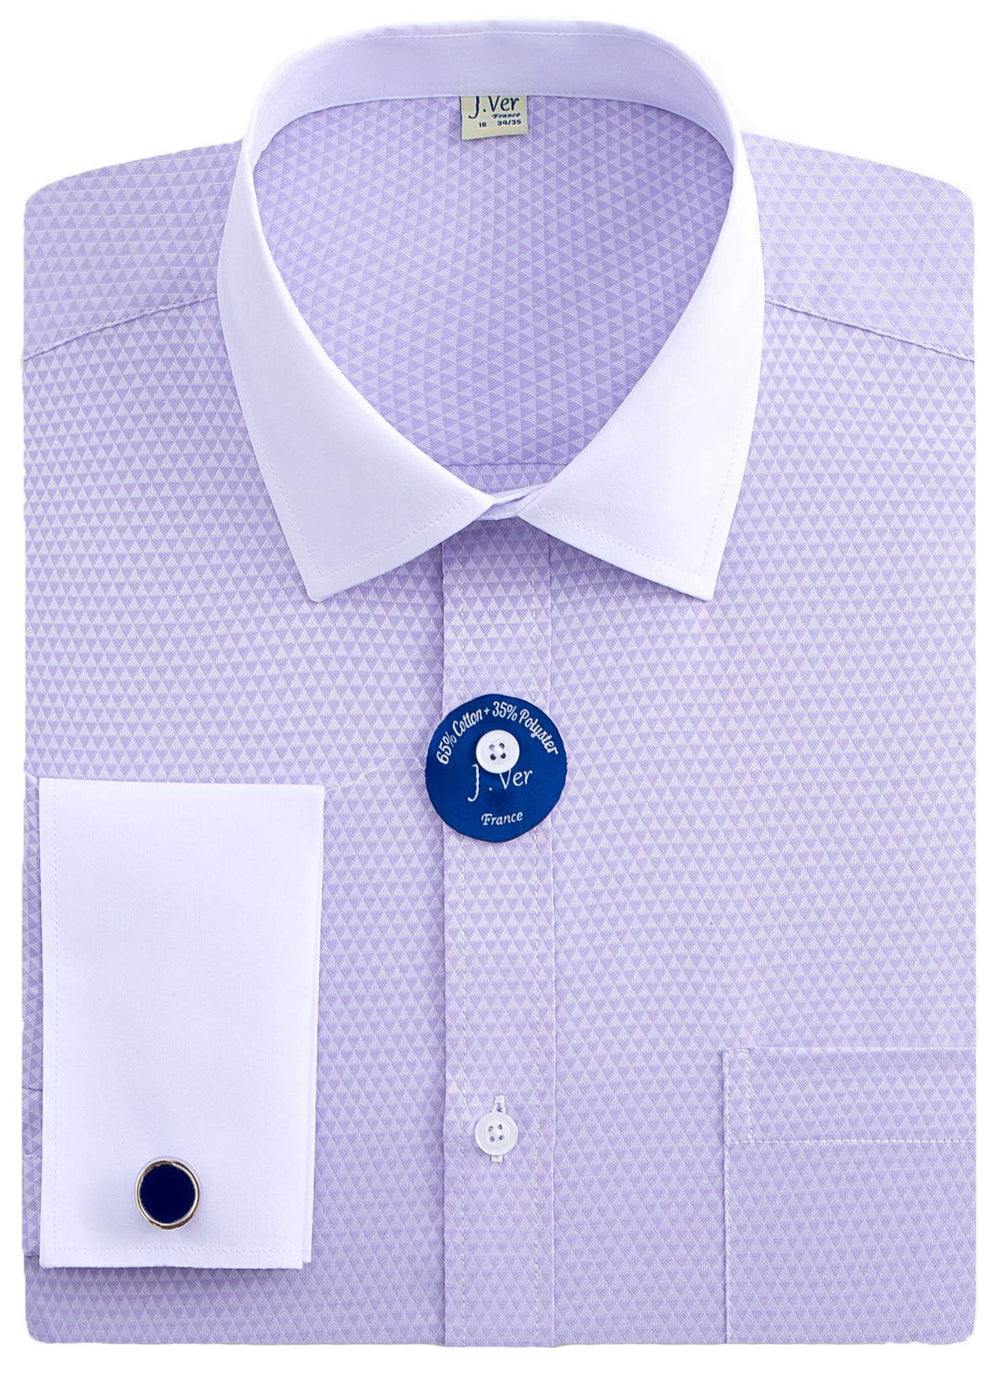 White Collar Dress Shirt